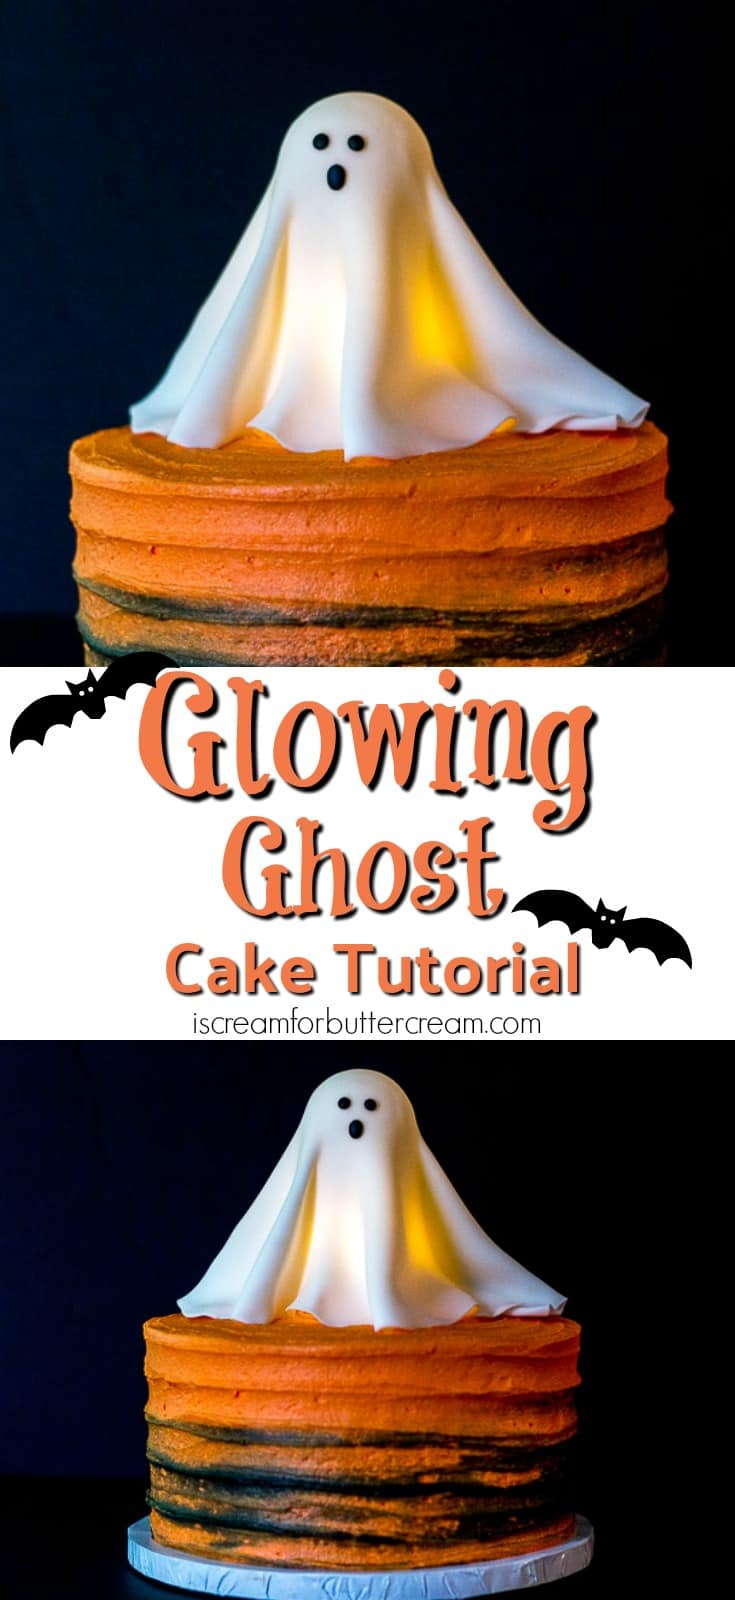 Glowing Ghost Cake Tutorial Pinterest Graphic